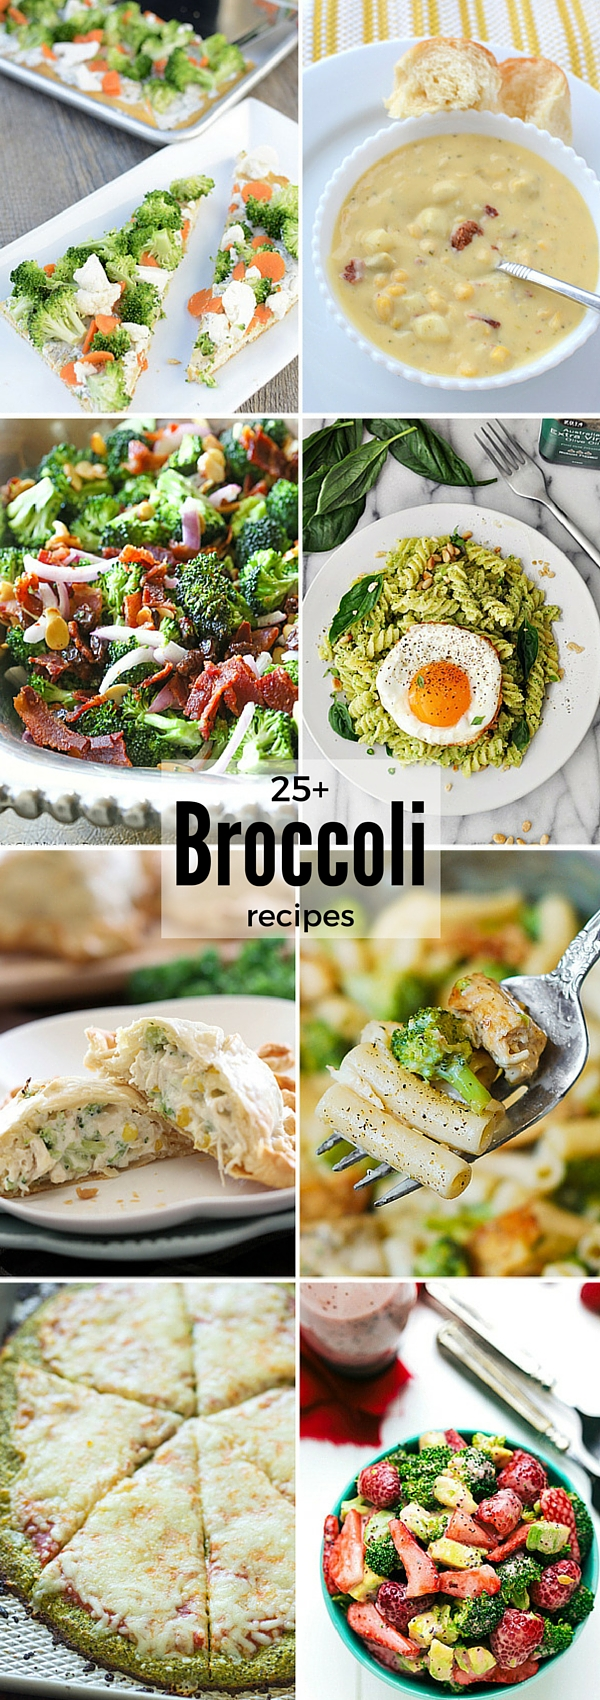 Broccoli Recipes - New Delicious recipes that will have your family eating broccoli. #broccoli #broccolirecipes #dinnerideas #dinnerrecipes